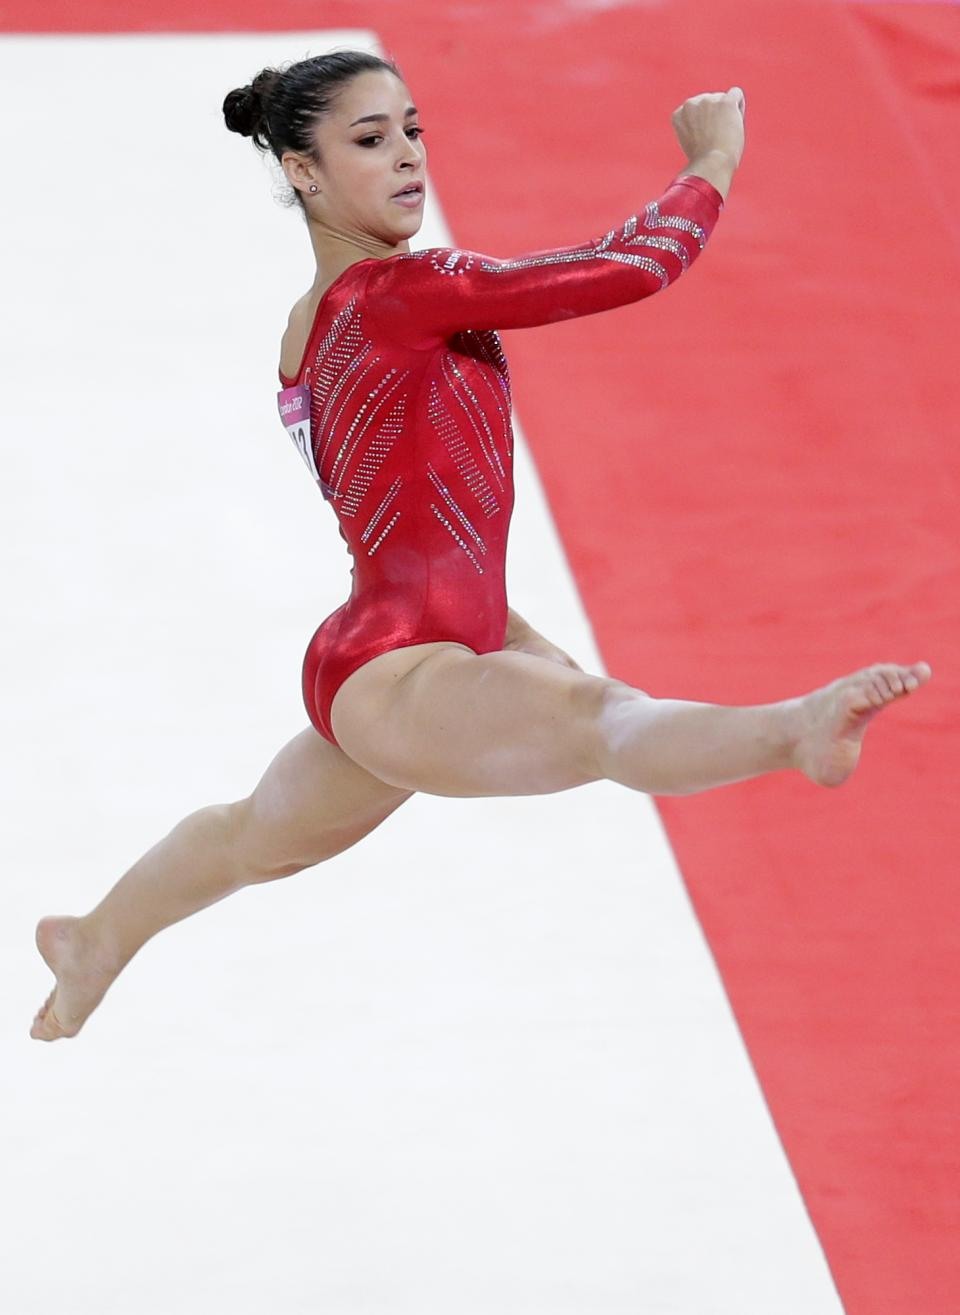 U.S. gymnast Alexandra Raisman performs on the floor during the Artistic Gymnastic women's team final at the 2012 Summer Olympics, Tuesday, July 31, 2012, in London. (AP Photo/Gregory Bull)